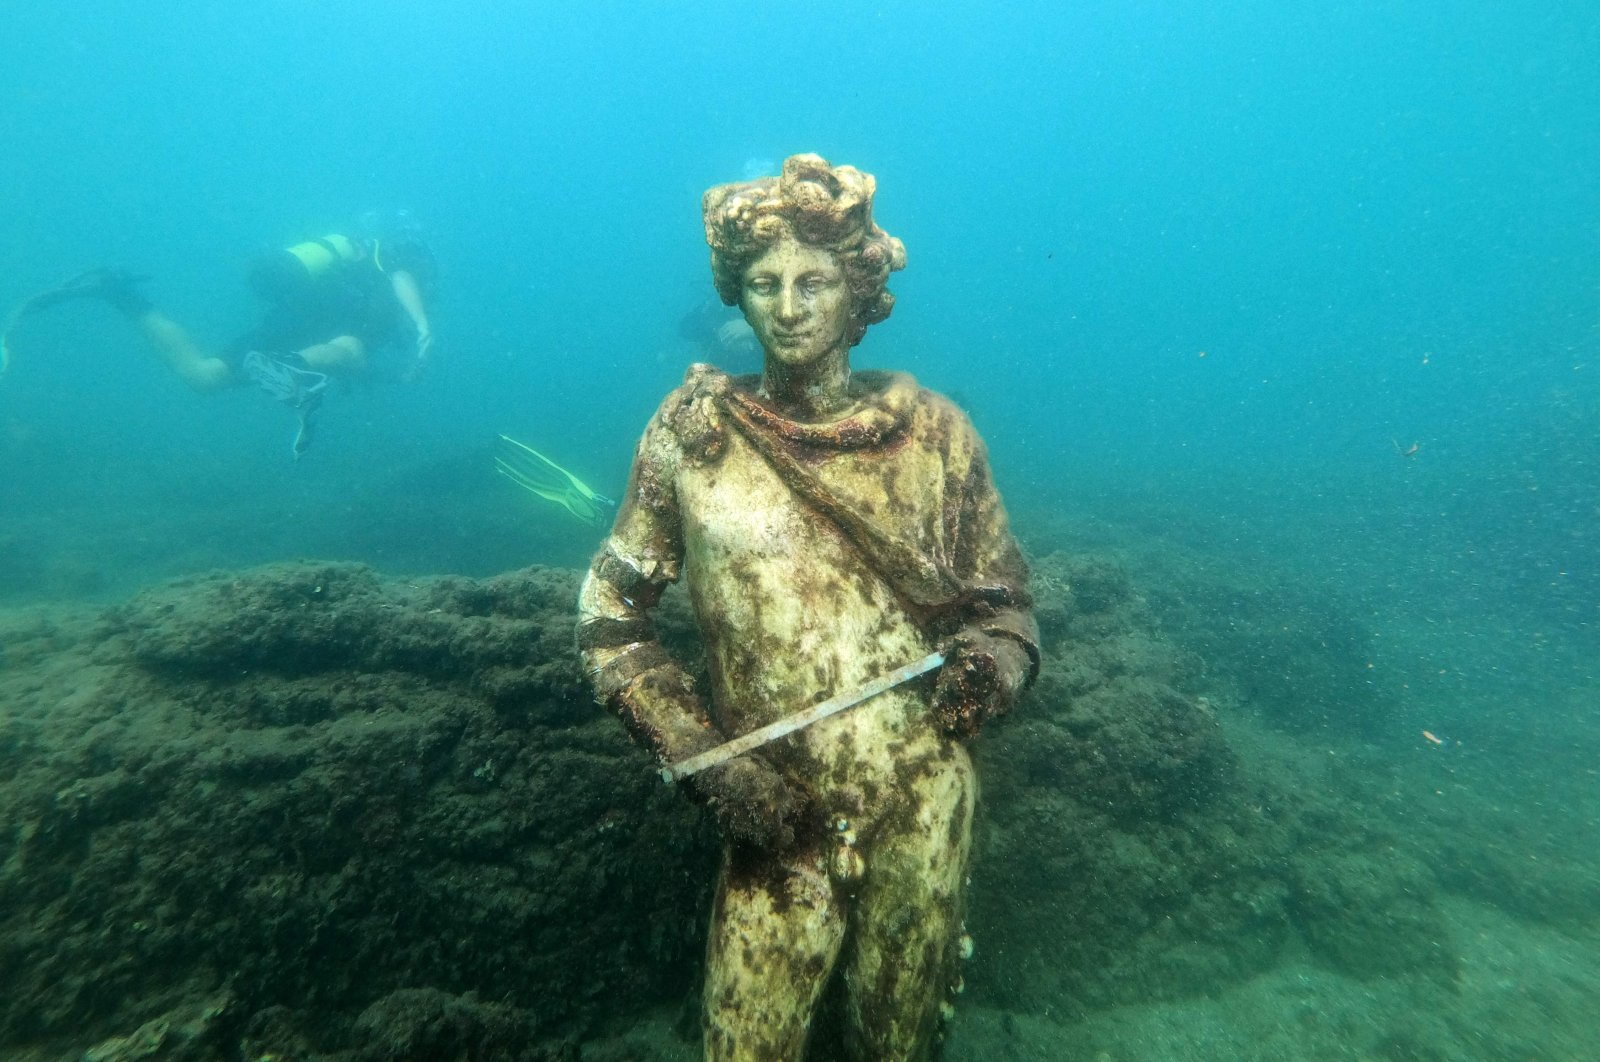 A dive guide shows tourists a copy of the original statue preserved at the Museum of Baiae in the submerged ancient Roman city of Baiae, Pozzuoli near Naples, Italy, Aug. 18, 2021. (AFP Photo)